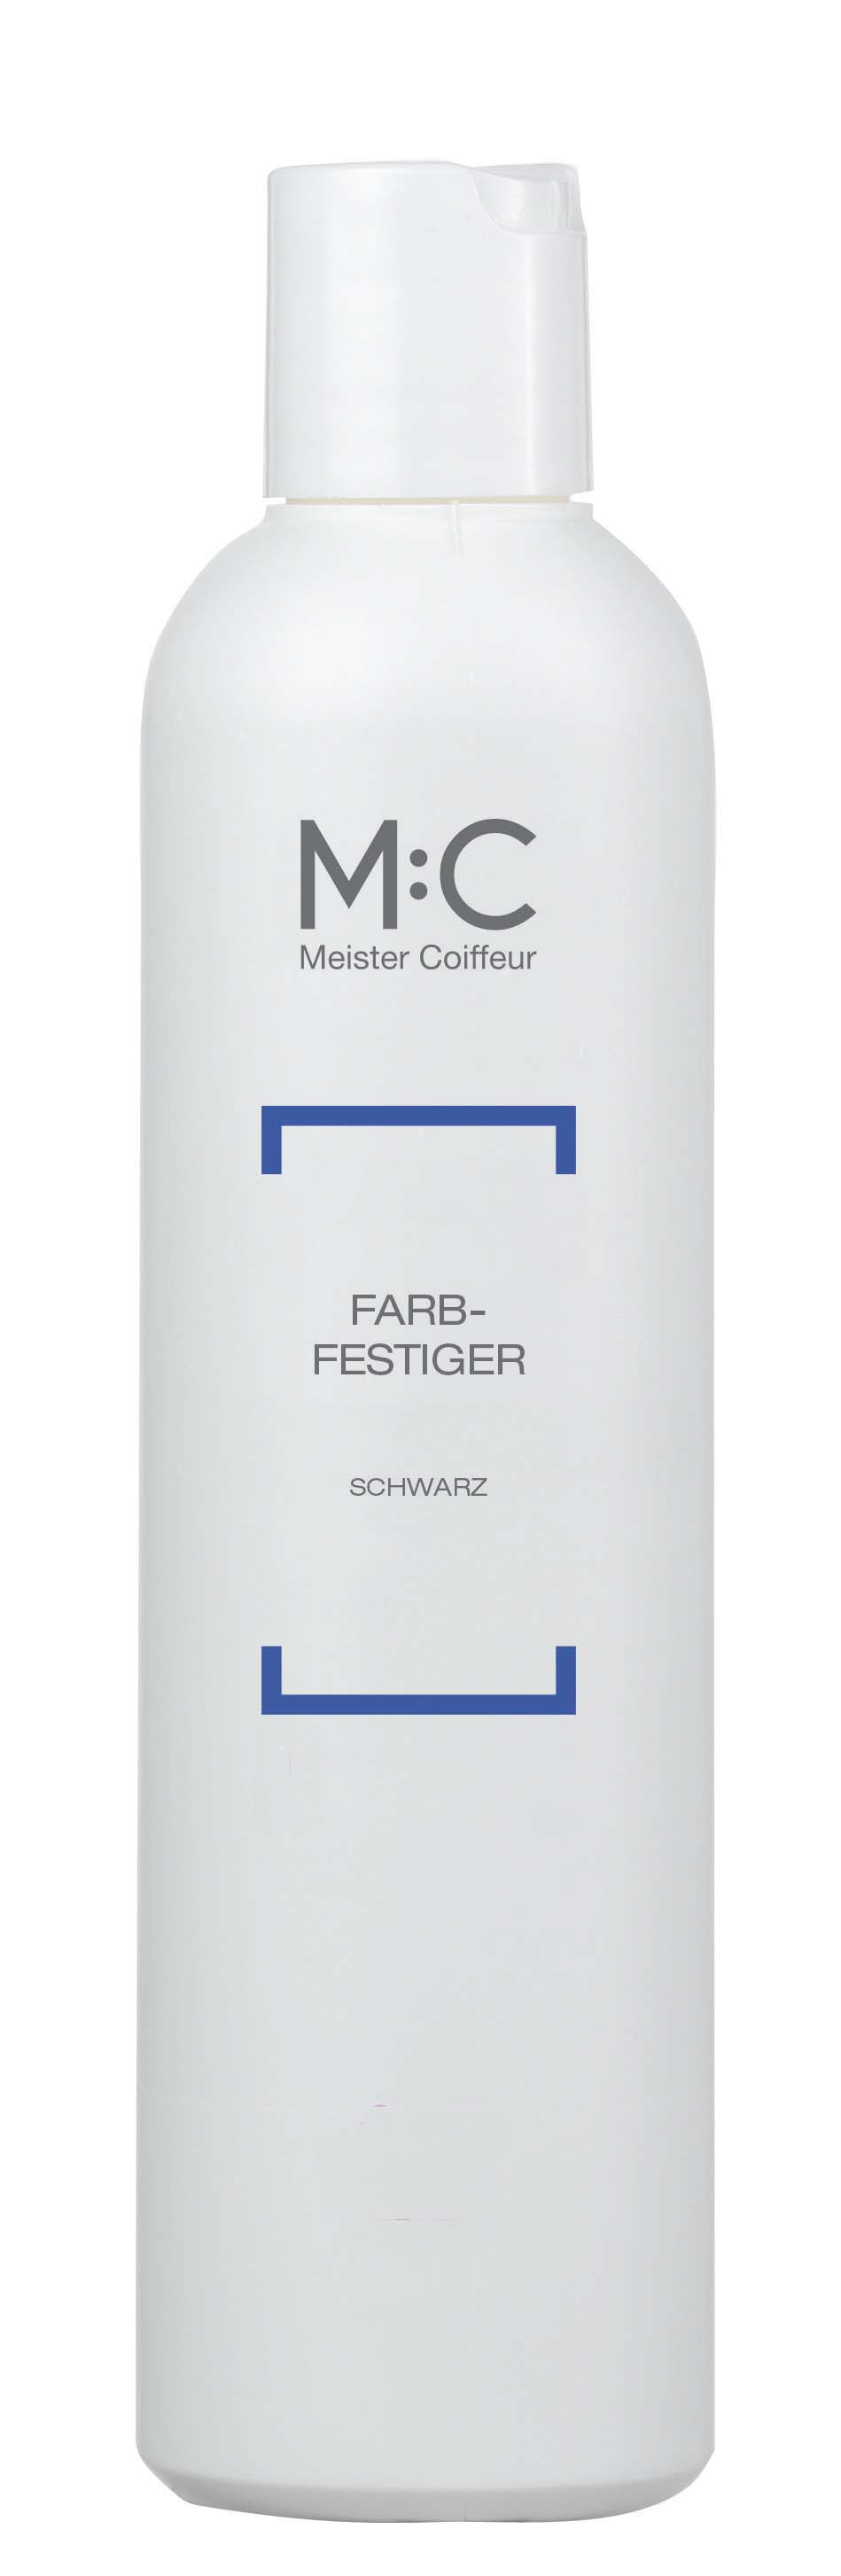 M:C Color Lotion schwarz C